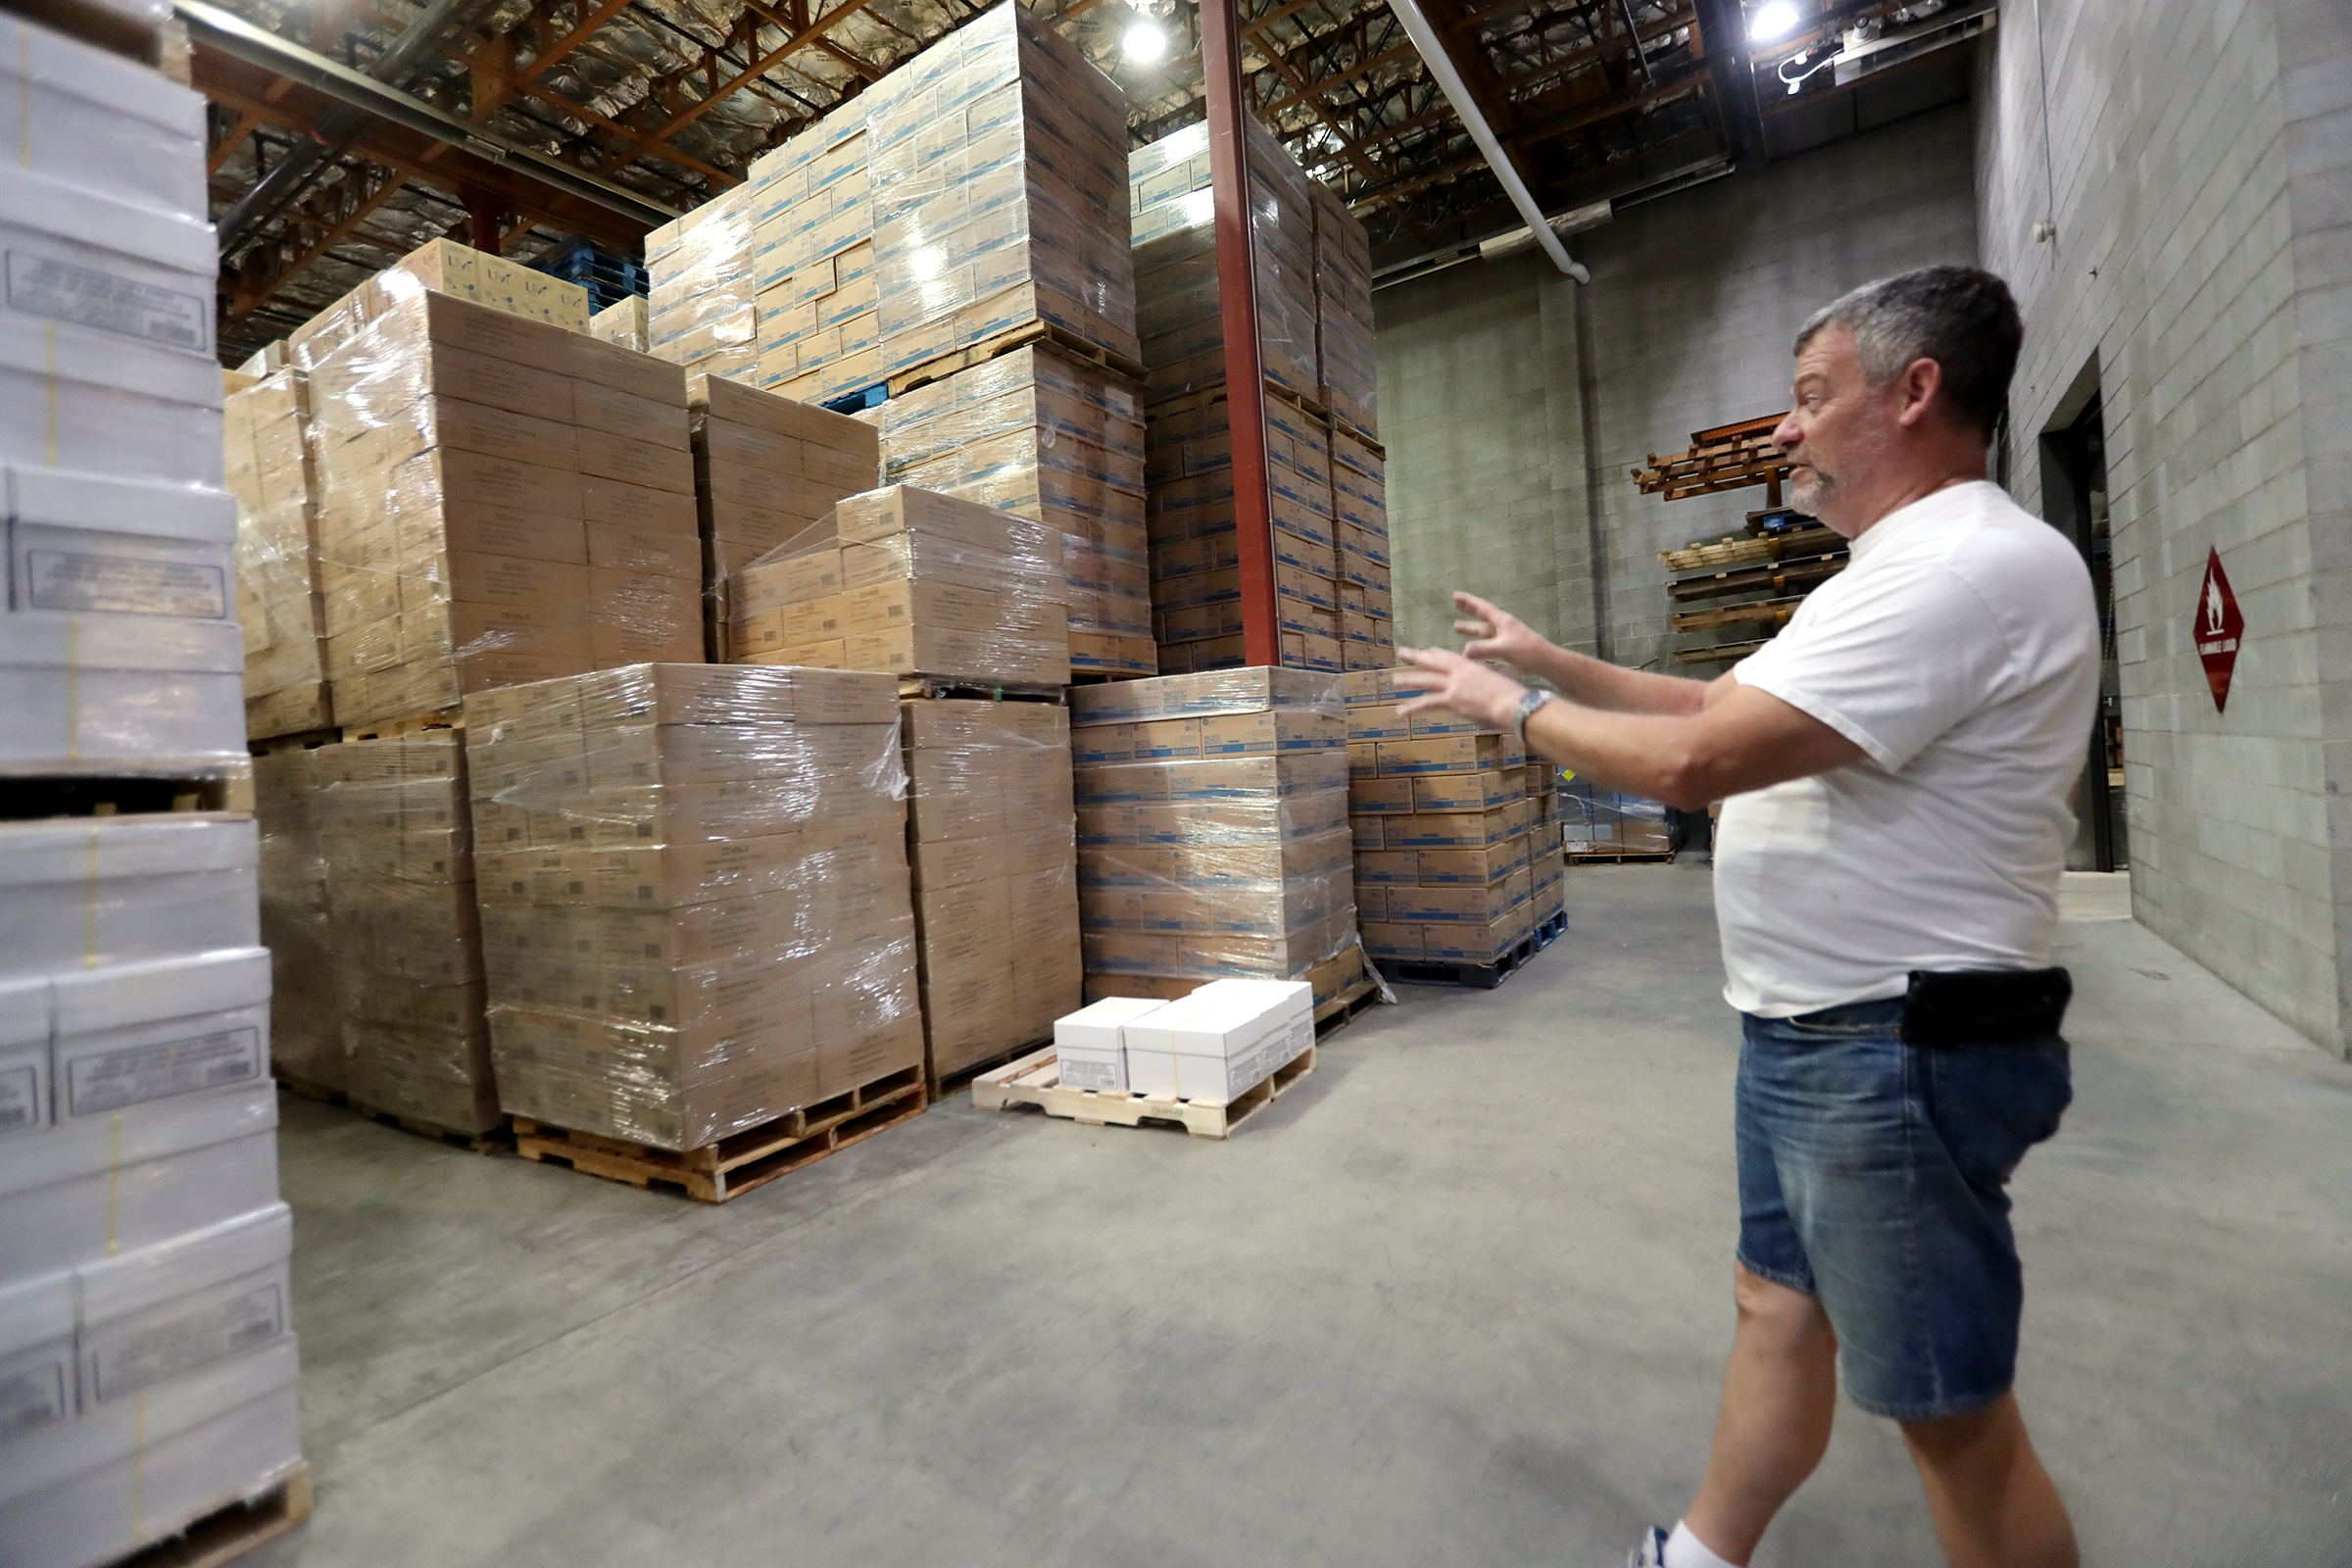 Joe Mortensen, warehouse leadman, shows some of the COVID-19 supplies being storied at the Granite School District warehouse in South Salt Lake on Friday, July 17, 2020. The items will be distributed when schools reopen.